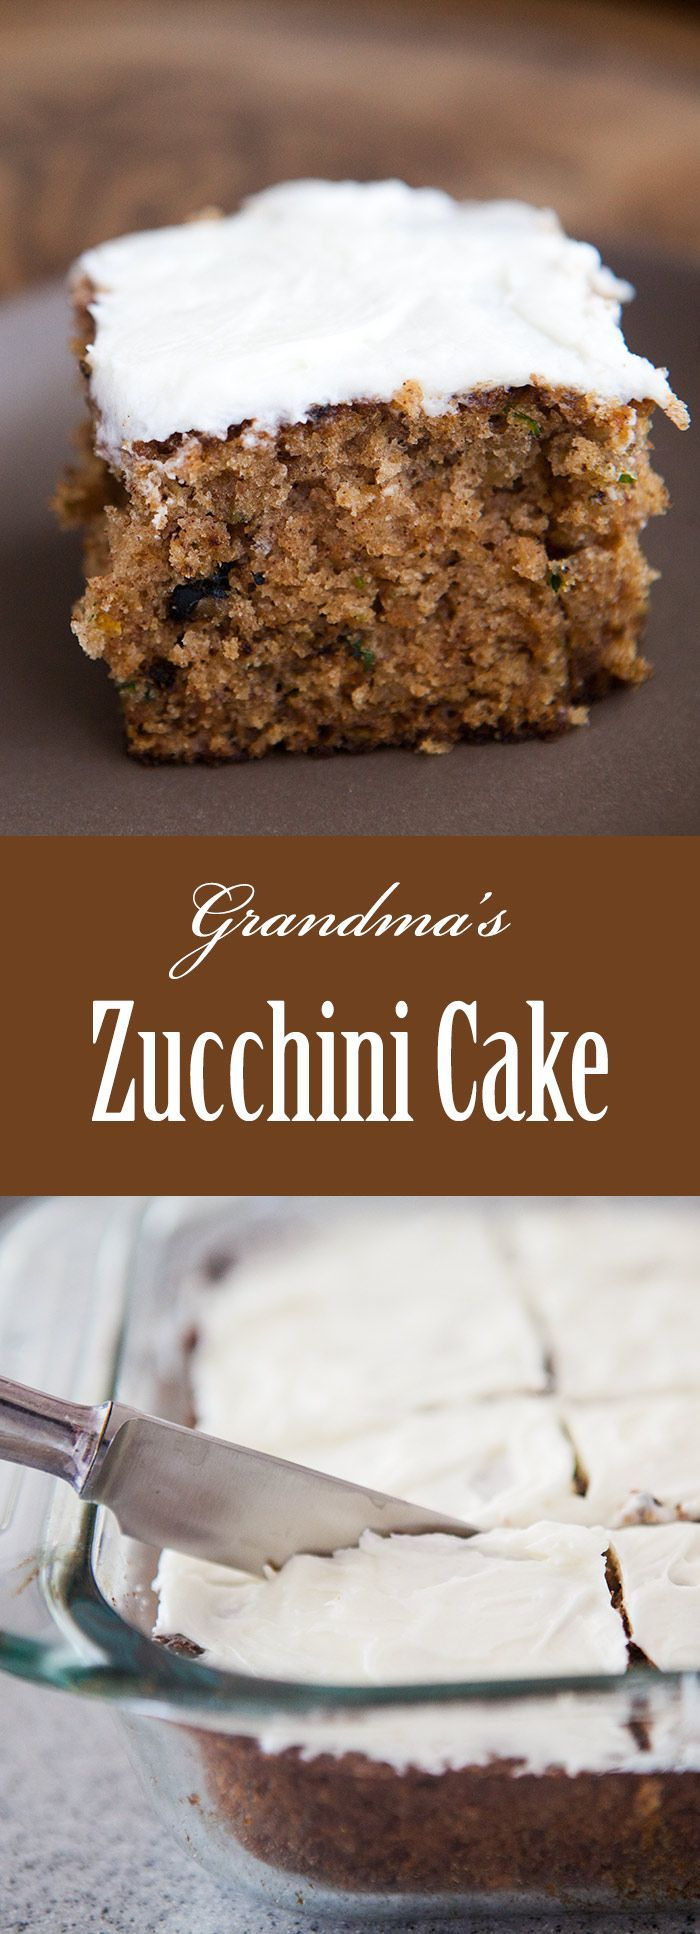 Grandma's Zucchini Cake ~ My grandmother's recipe for a gently spicy sheet cake, made with freshly grated zucchini. ~ SimplyRecipes.com